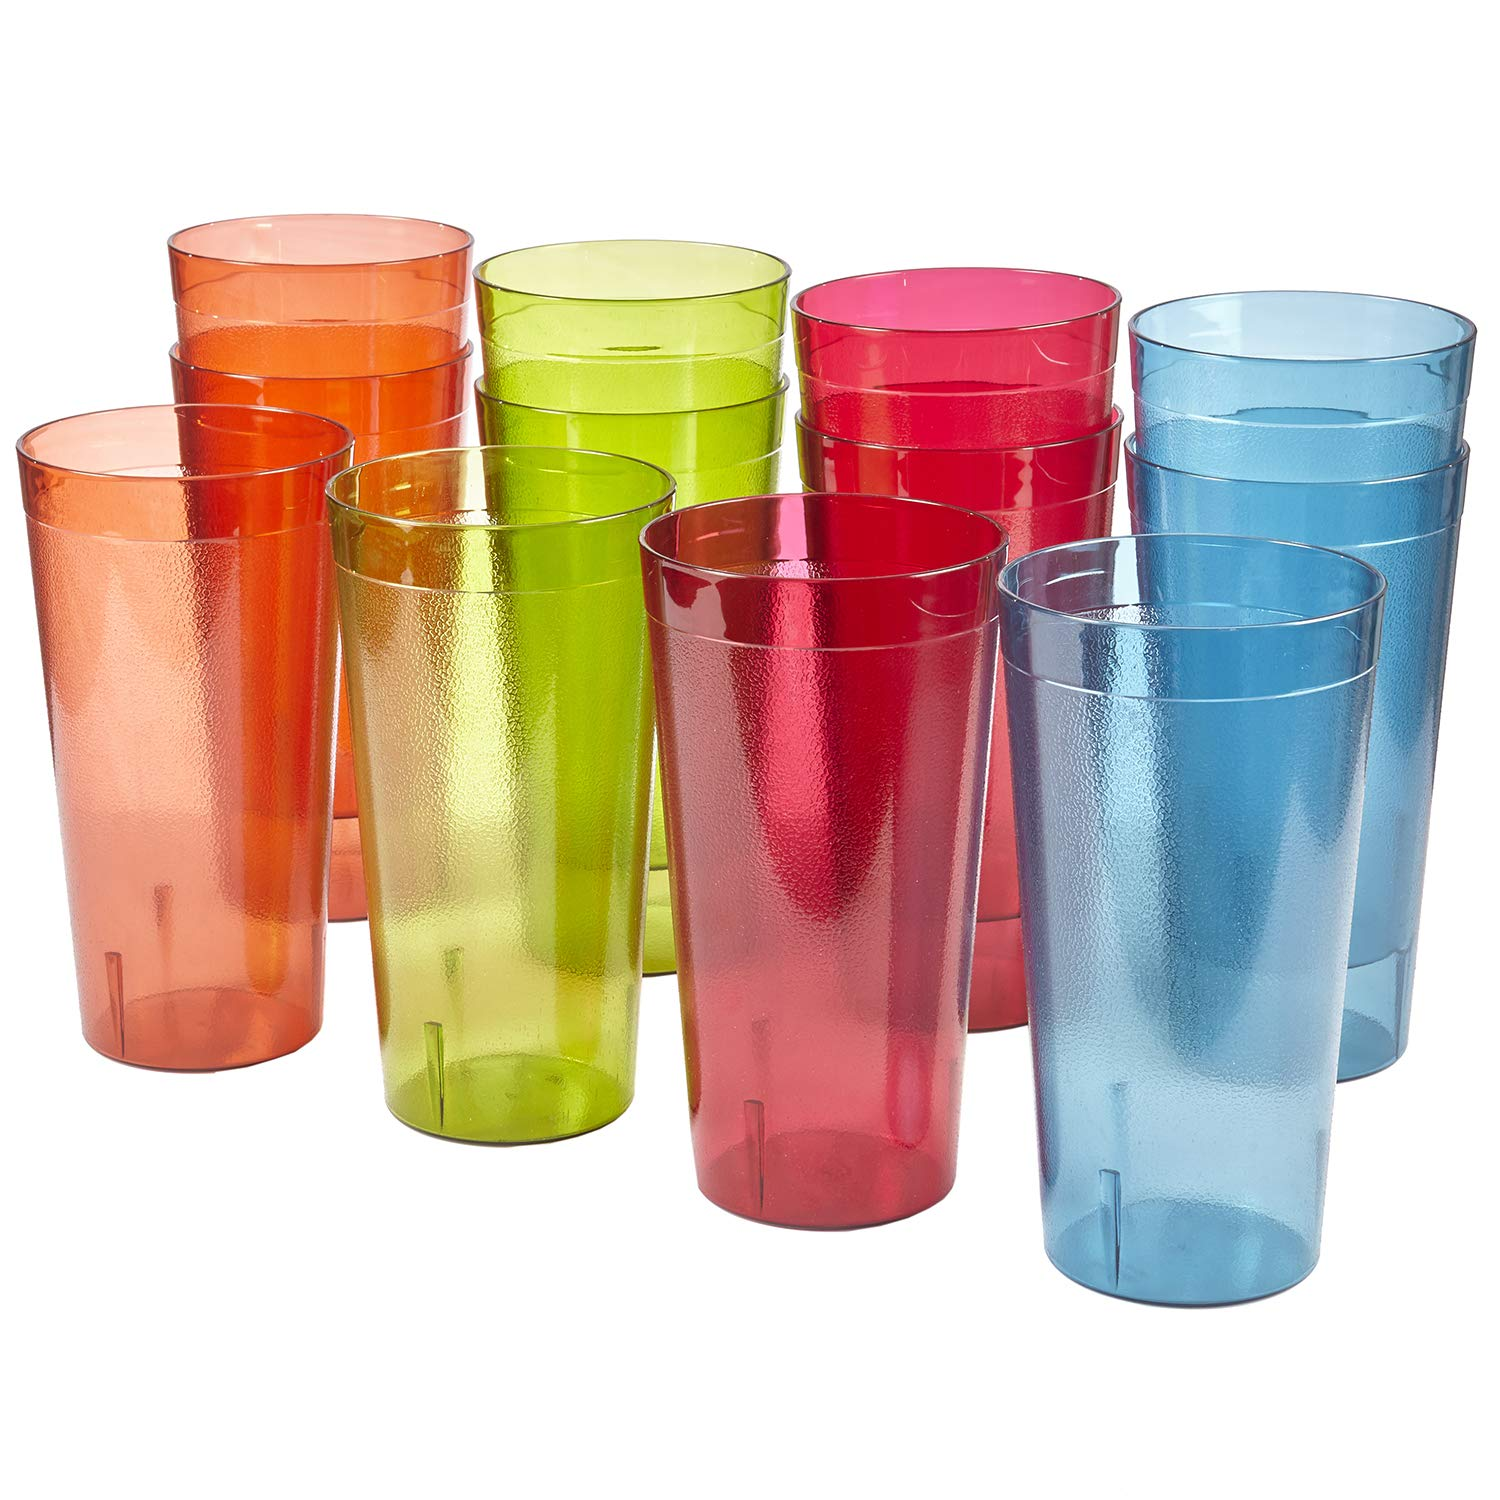 Café 32-ounce Plastic Restaurant Style Tumblers | set of 12 in 4 Assorted Colors